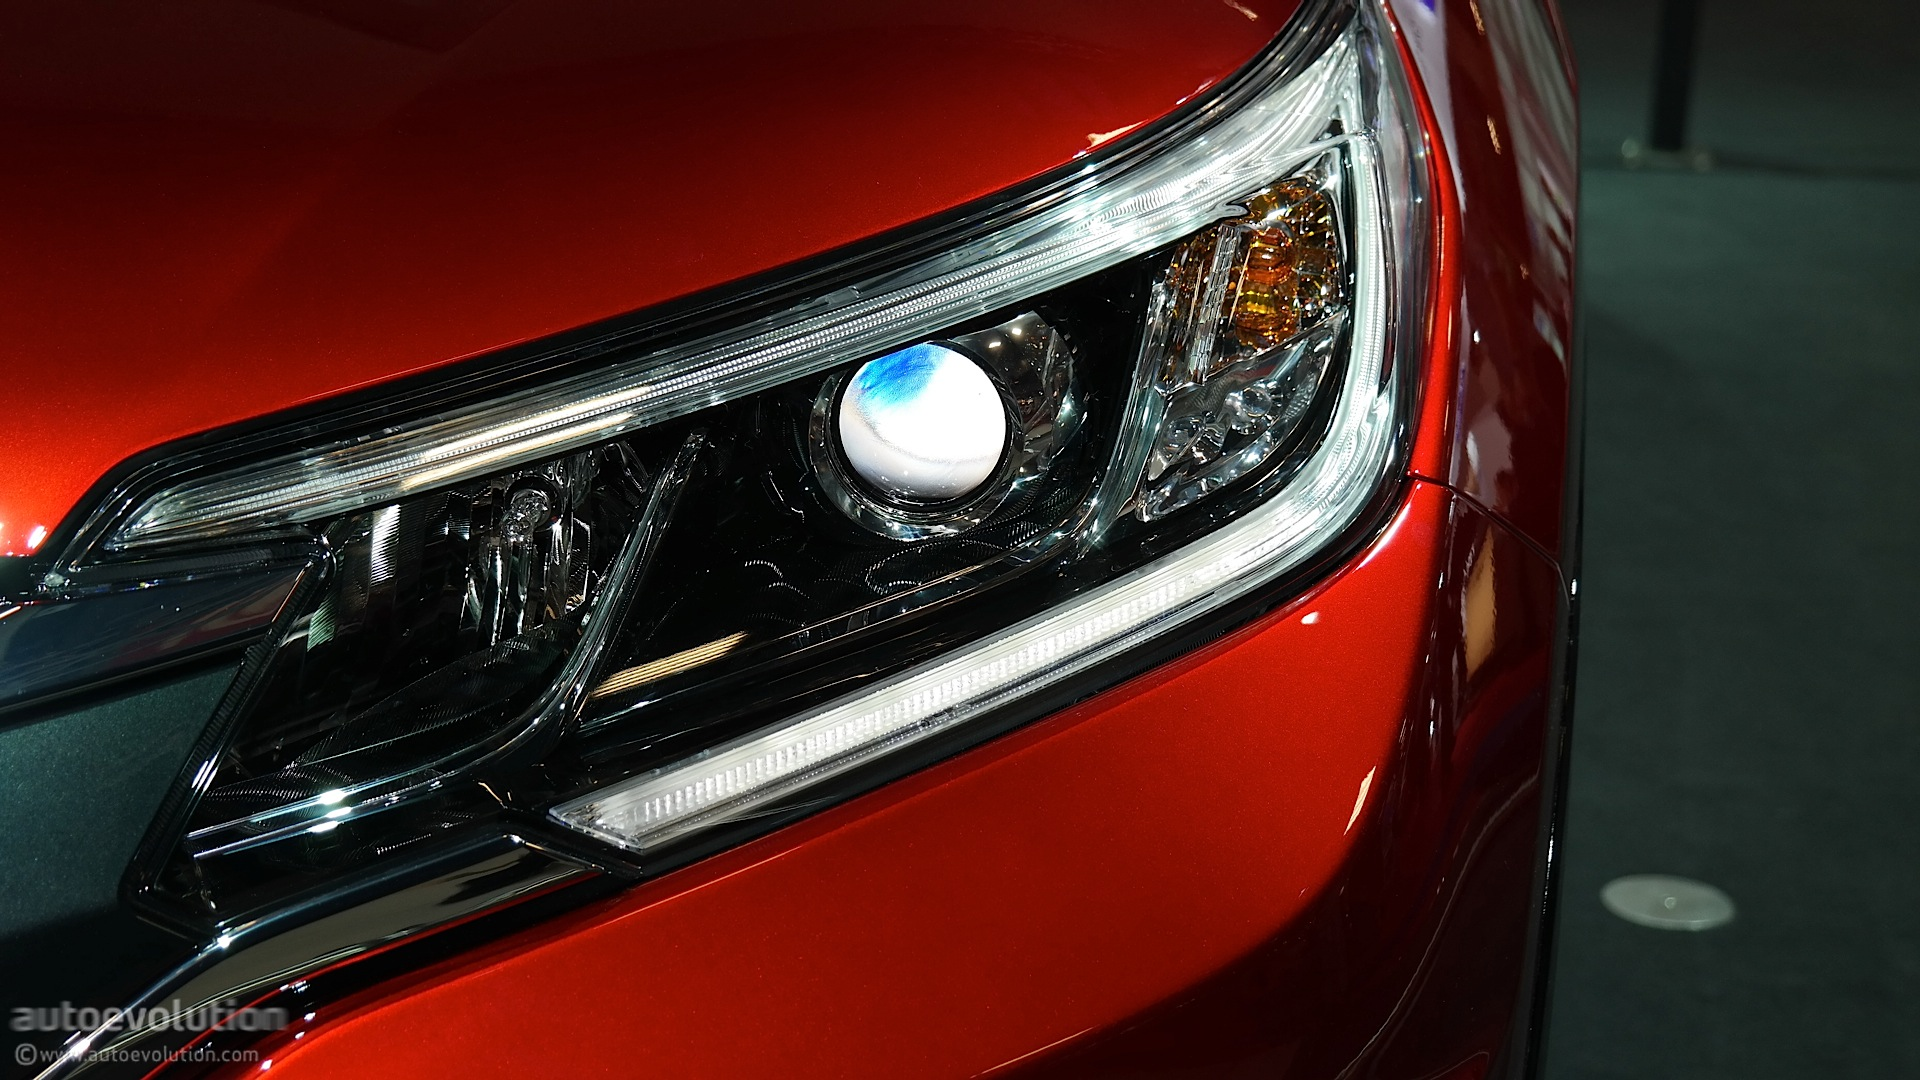 2015 Honda CR-V Headlights at Night